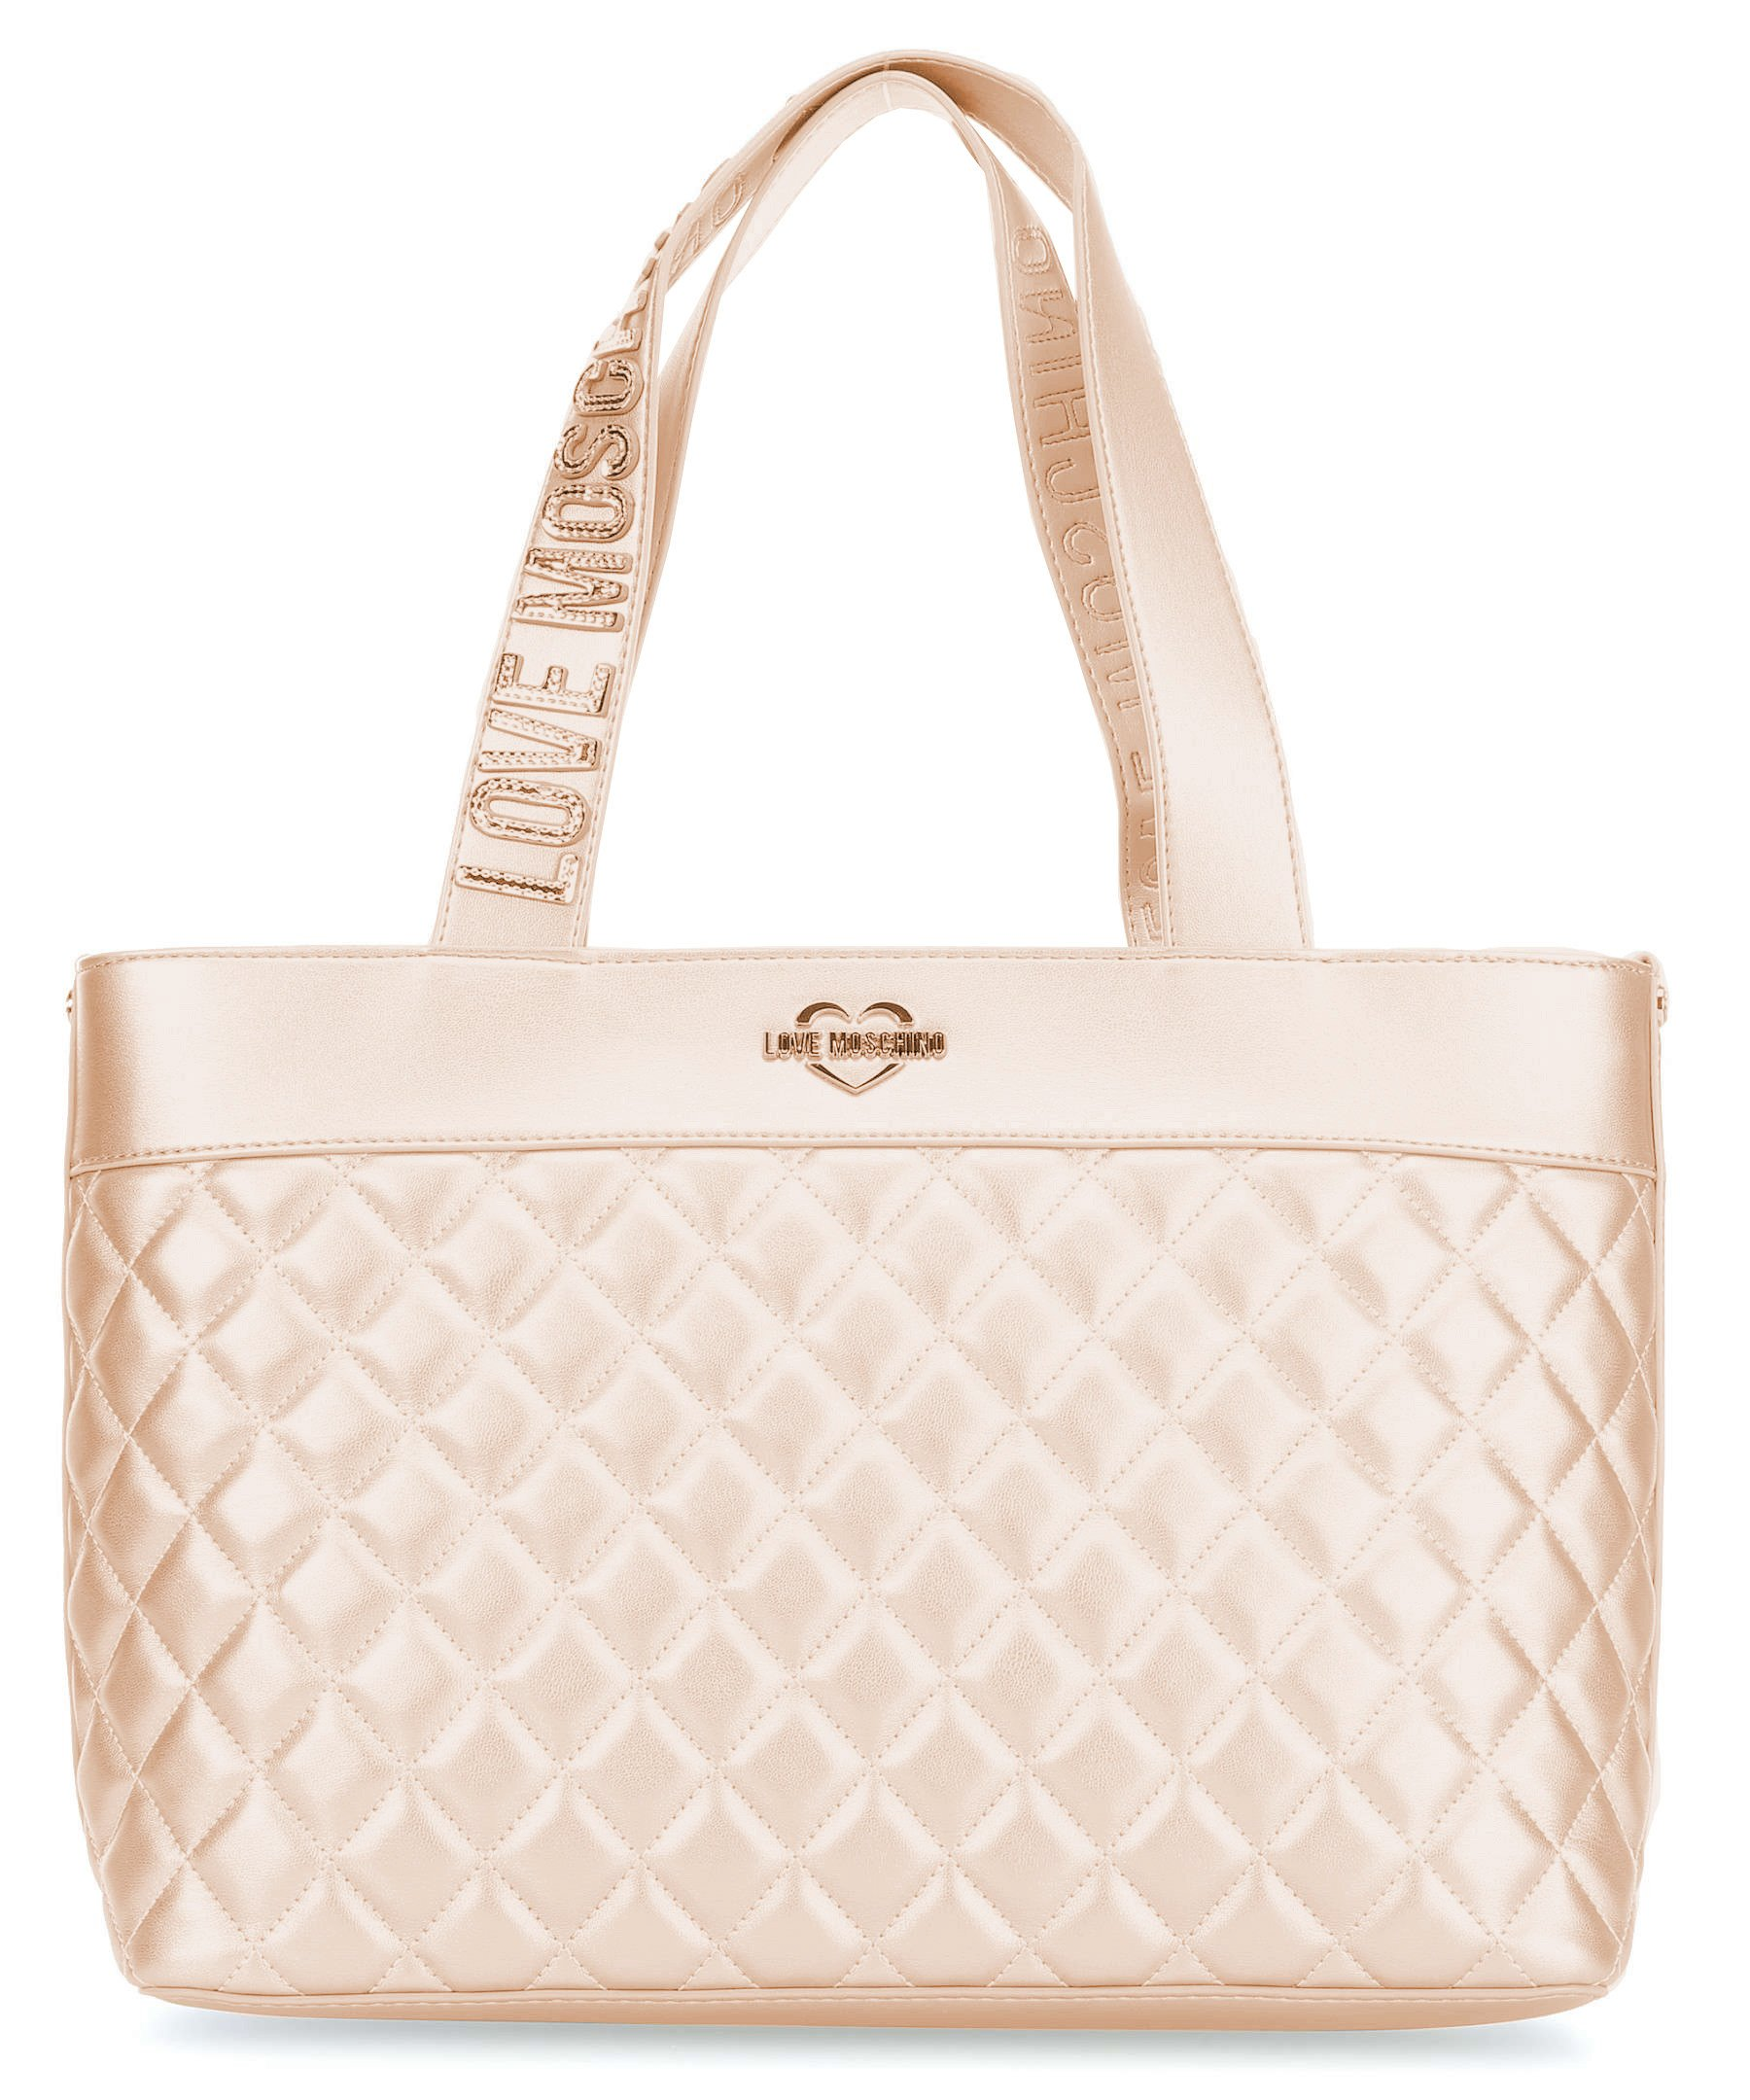 LOVE MOSCHINO Quilted Tote with Gold Metallic Logo Handles, Rose Gold